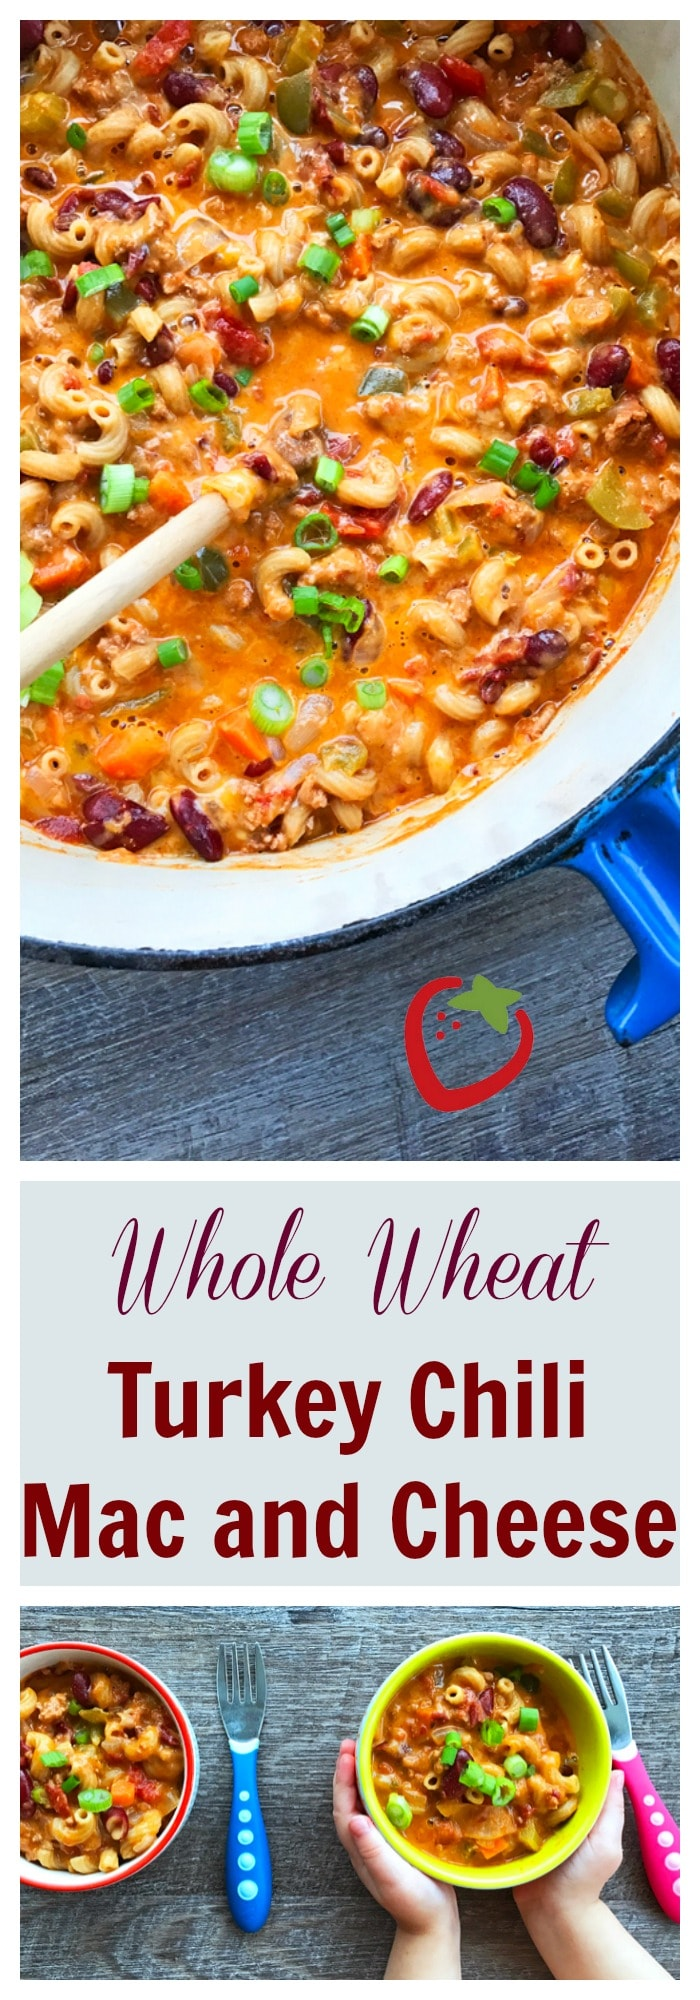 FOOD - Whole Wheat Turkey Chili Mac and Cheese. Southwestern flavor meets comfort food meets healthy family dinner. https://www.superhealthykids.com/mac/